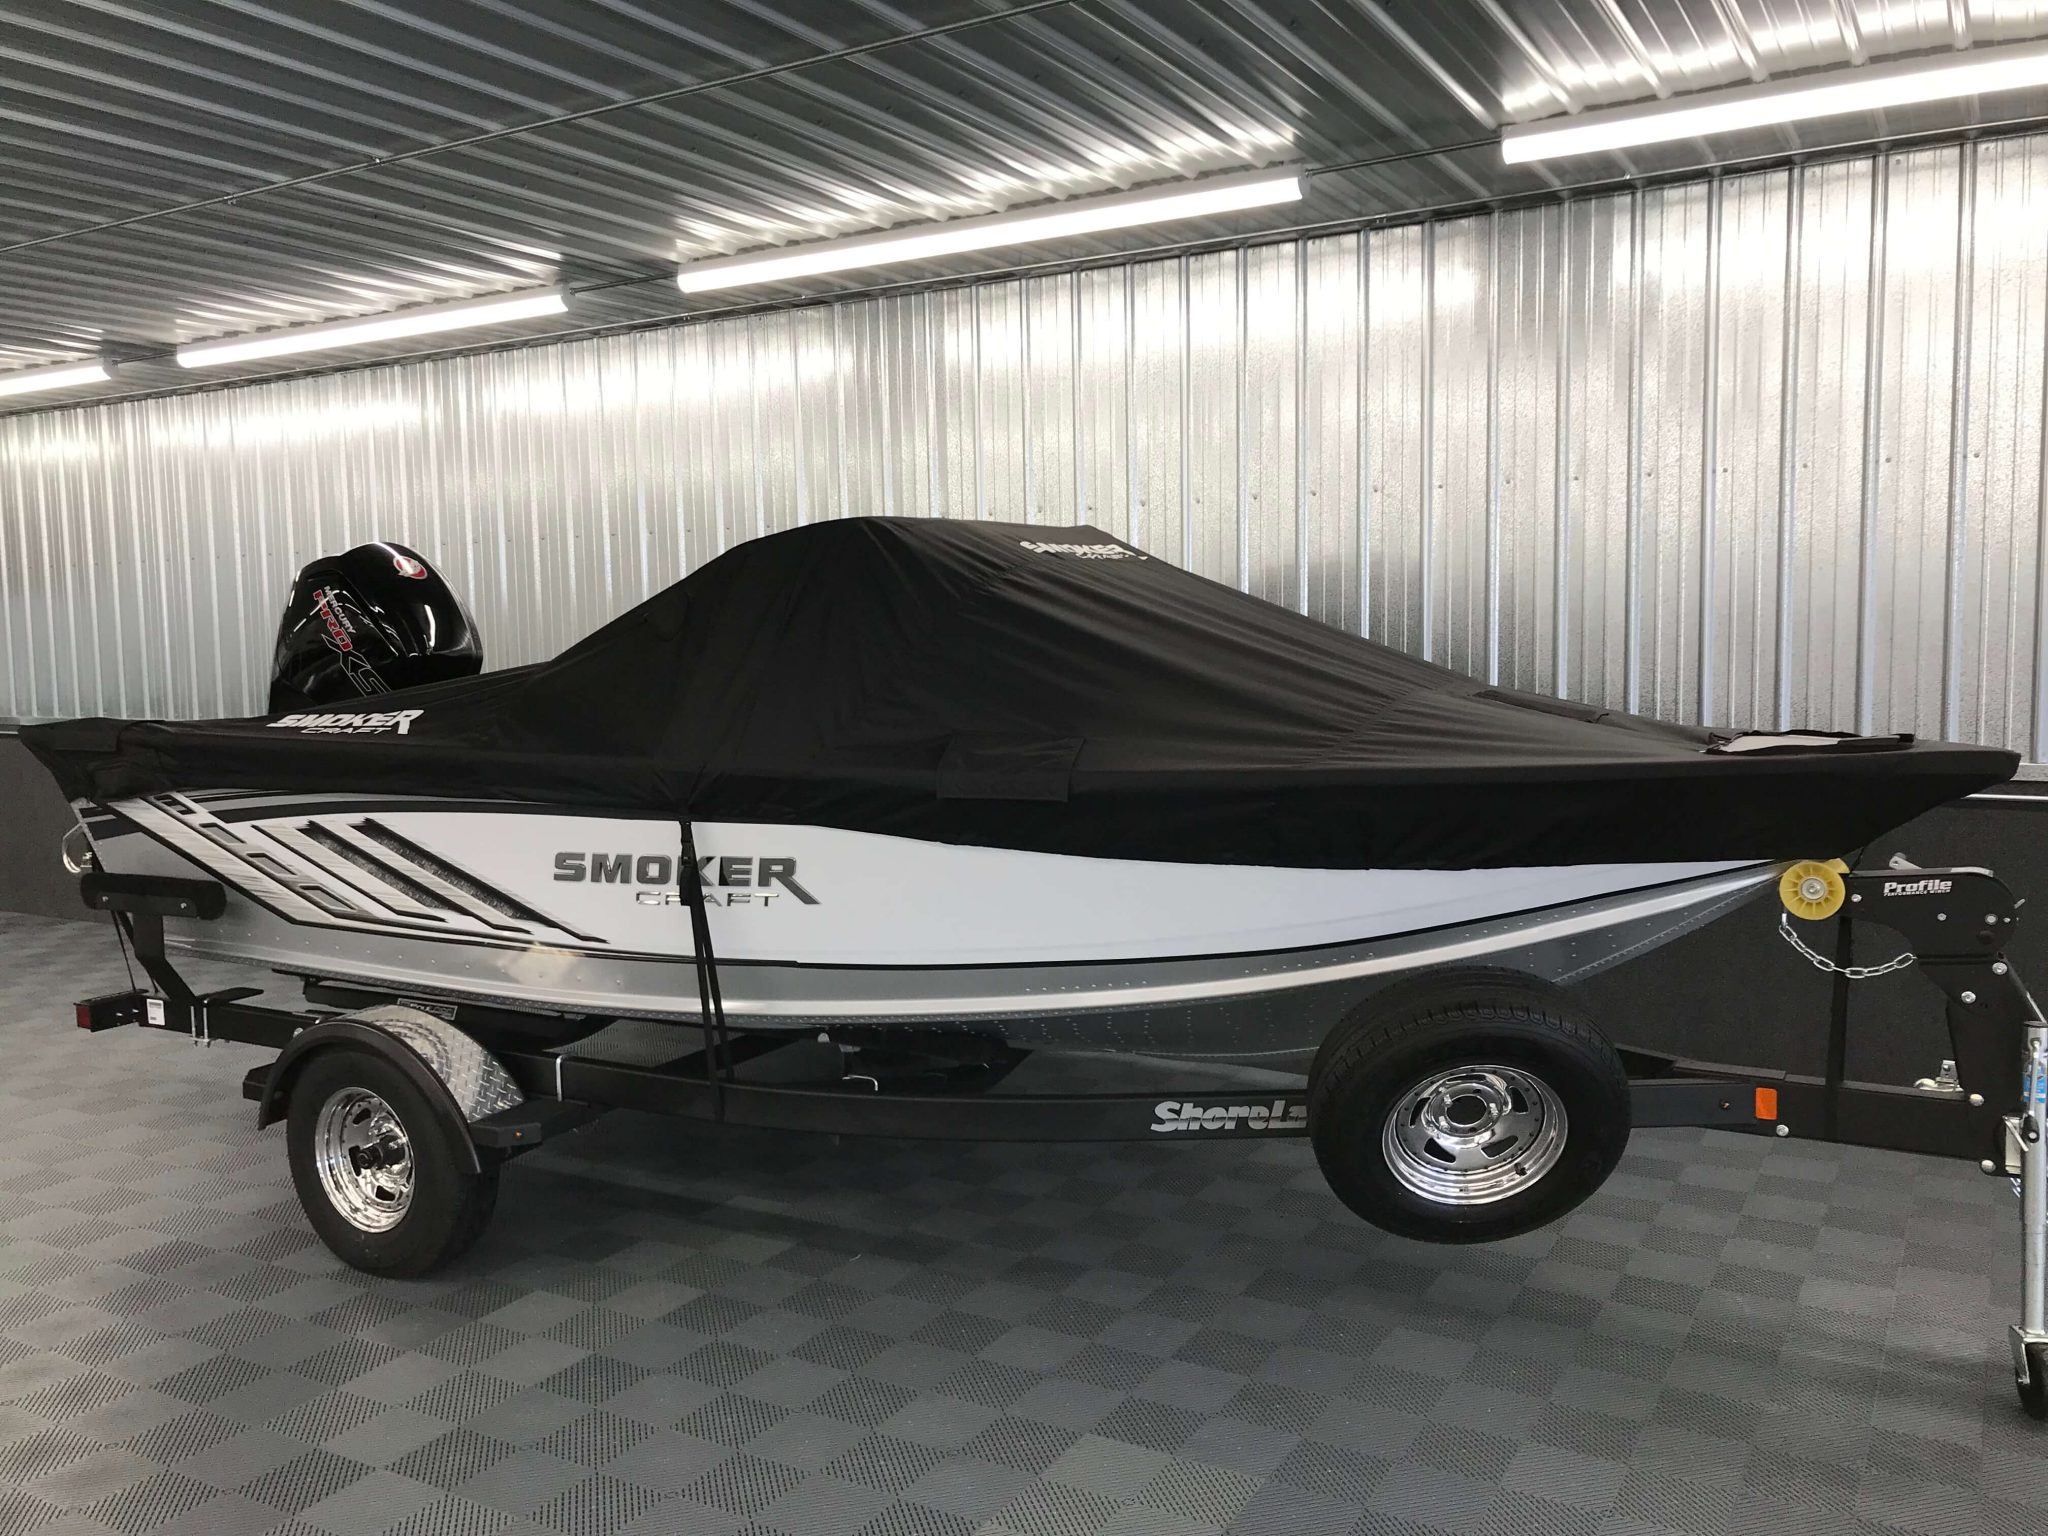 2019 Smoker Craft 172 Pro Angler XL Cover 1